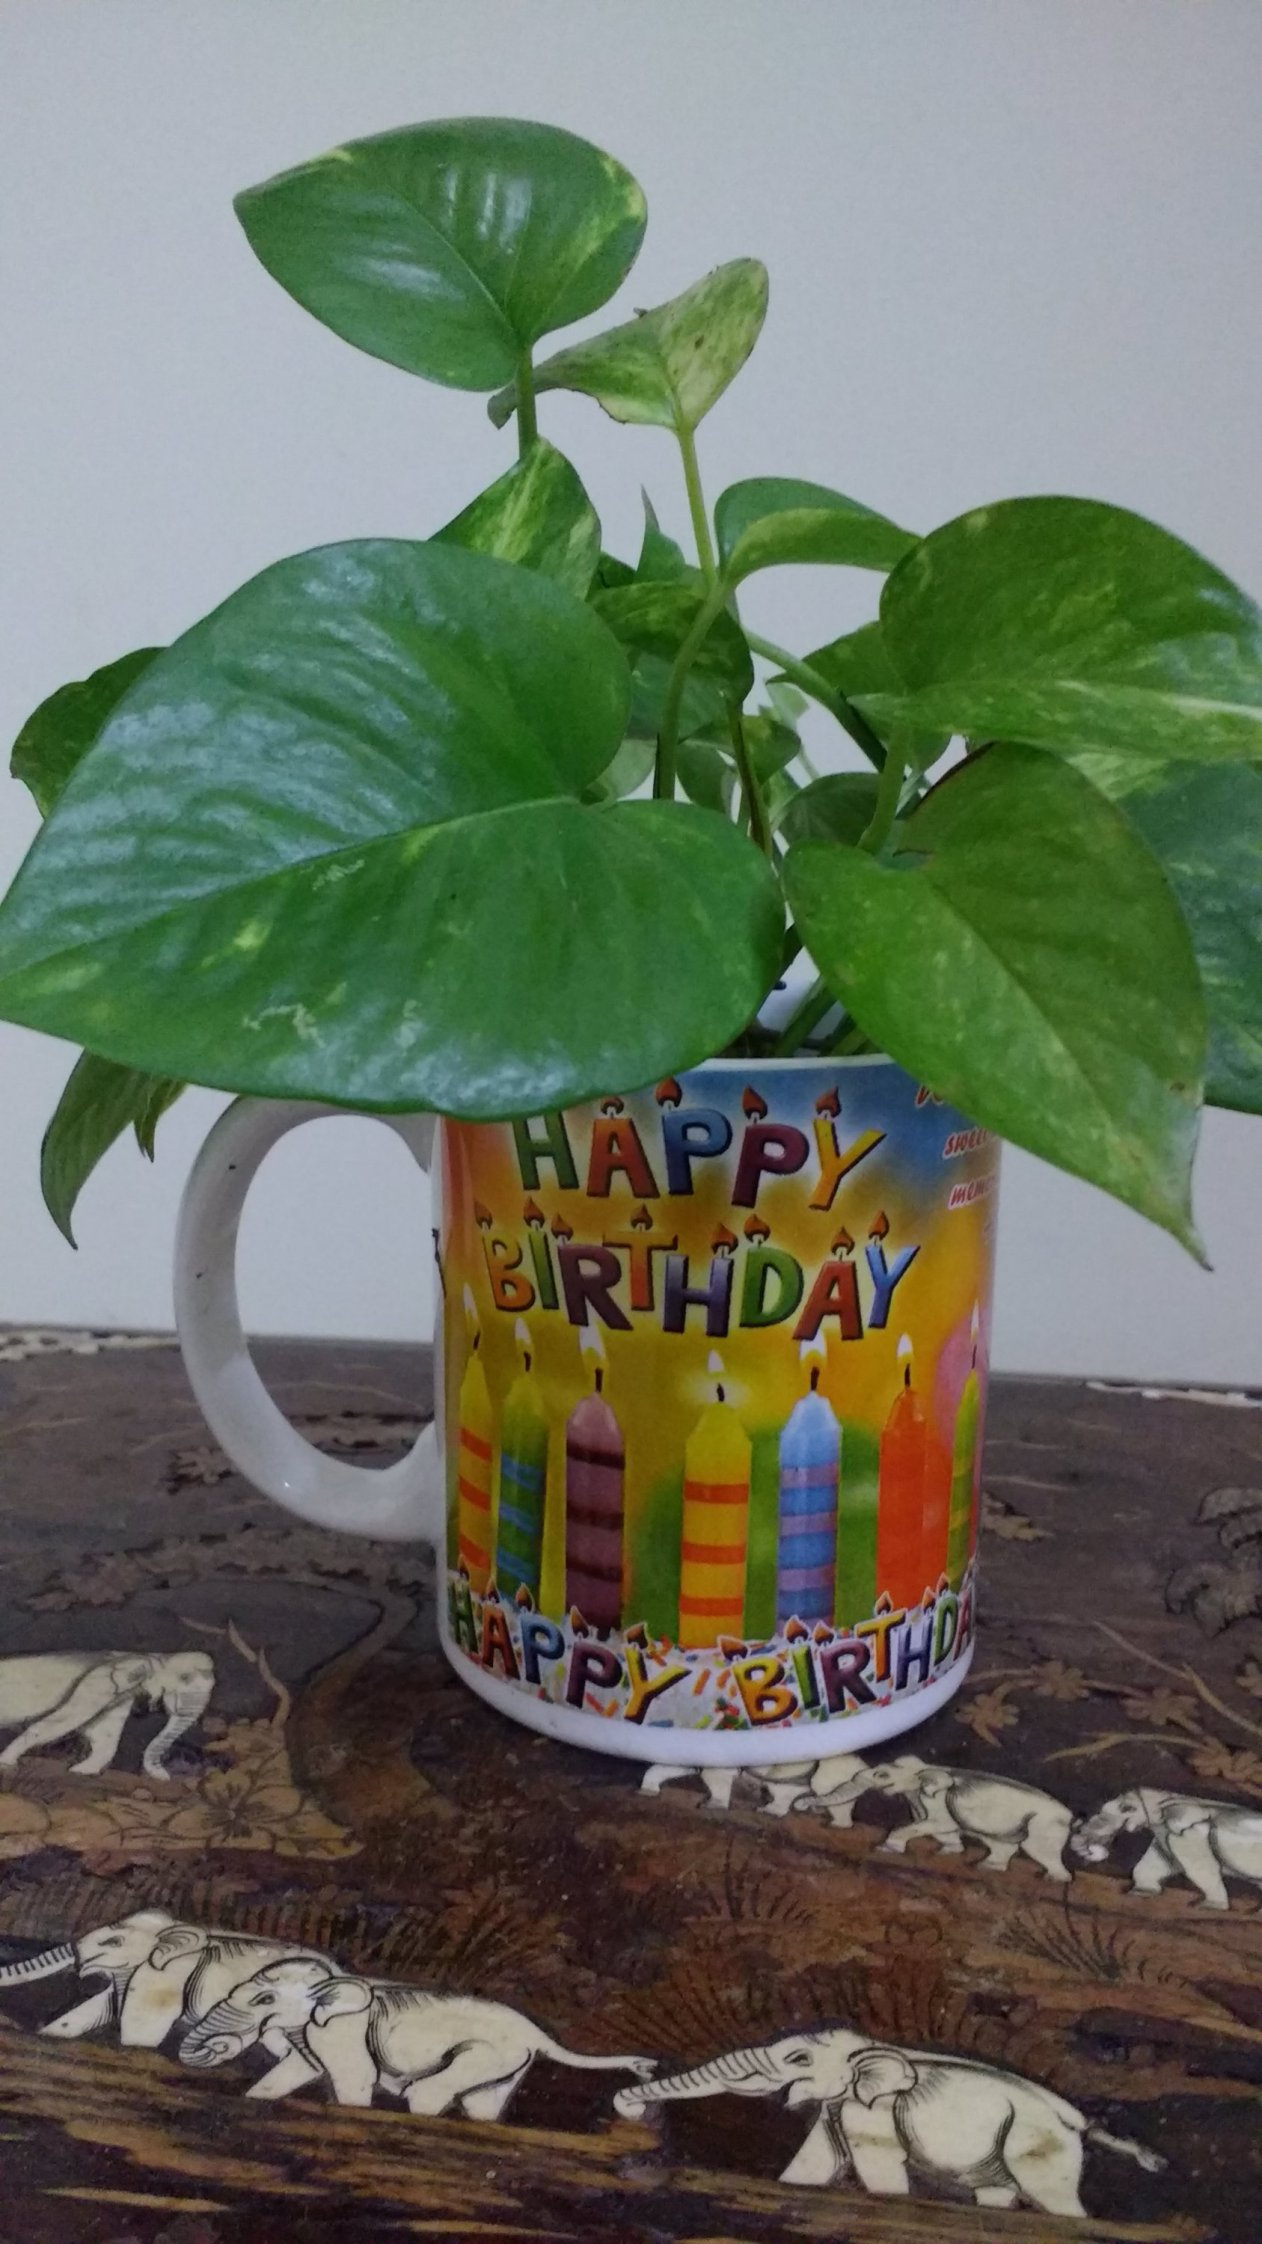 Money plants are ideal gifts on various occasions